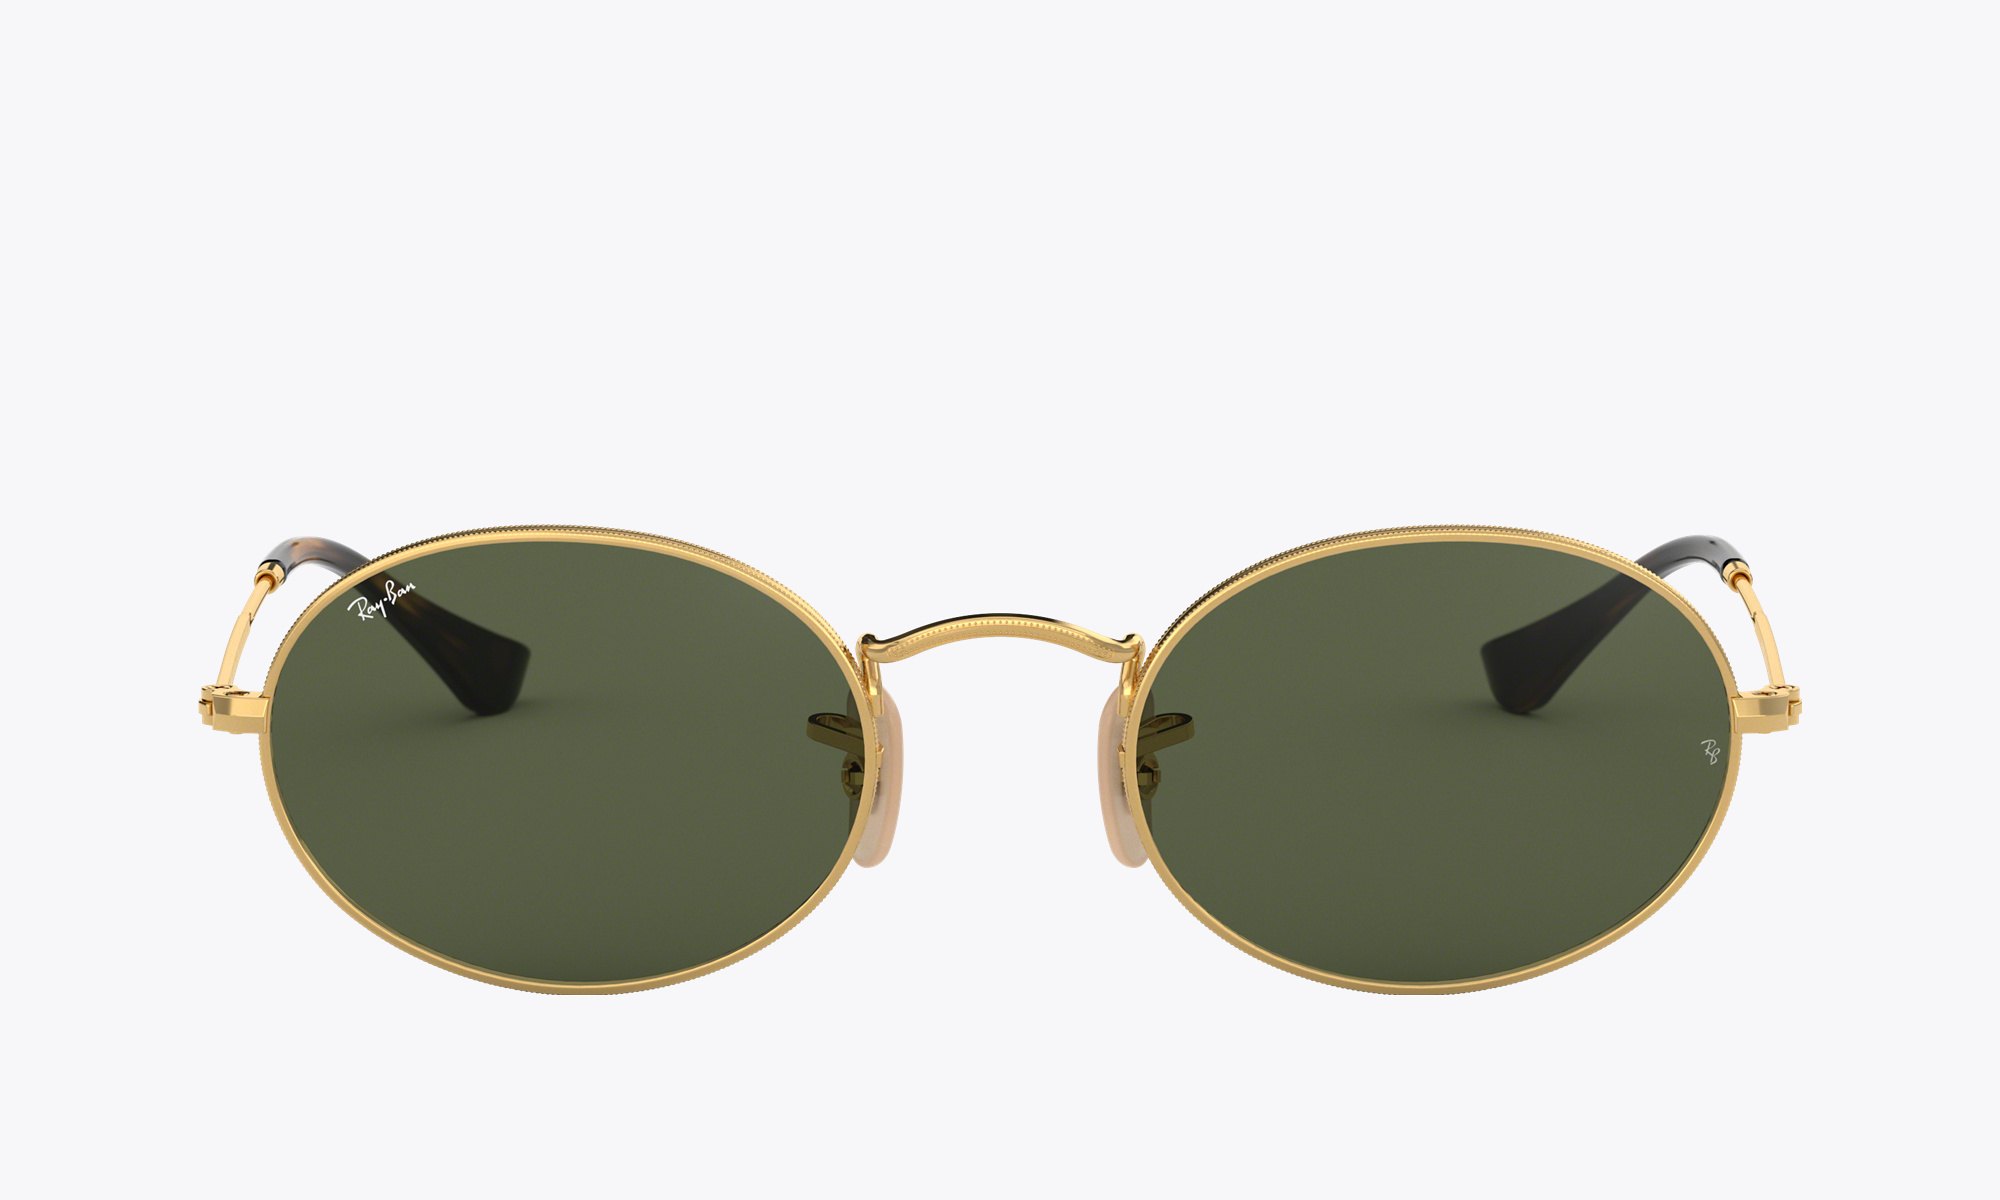 Image of Ray-Ban OVAL FLAT LENSES color Gold